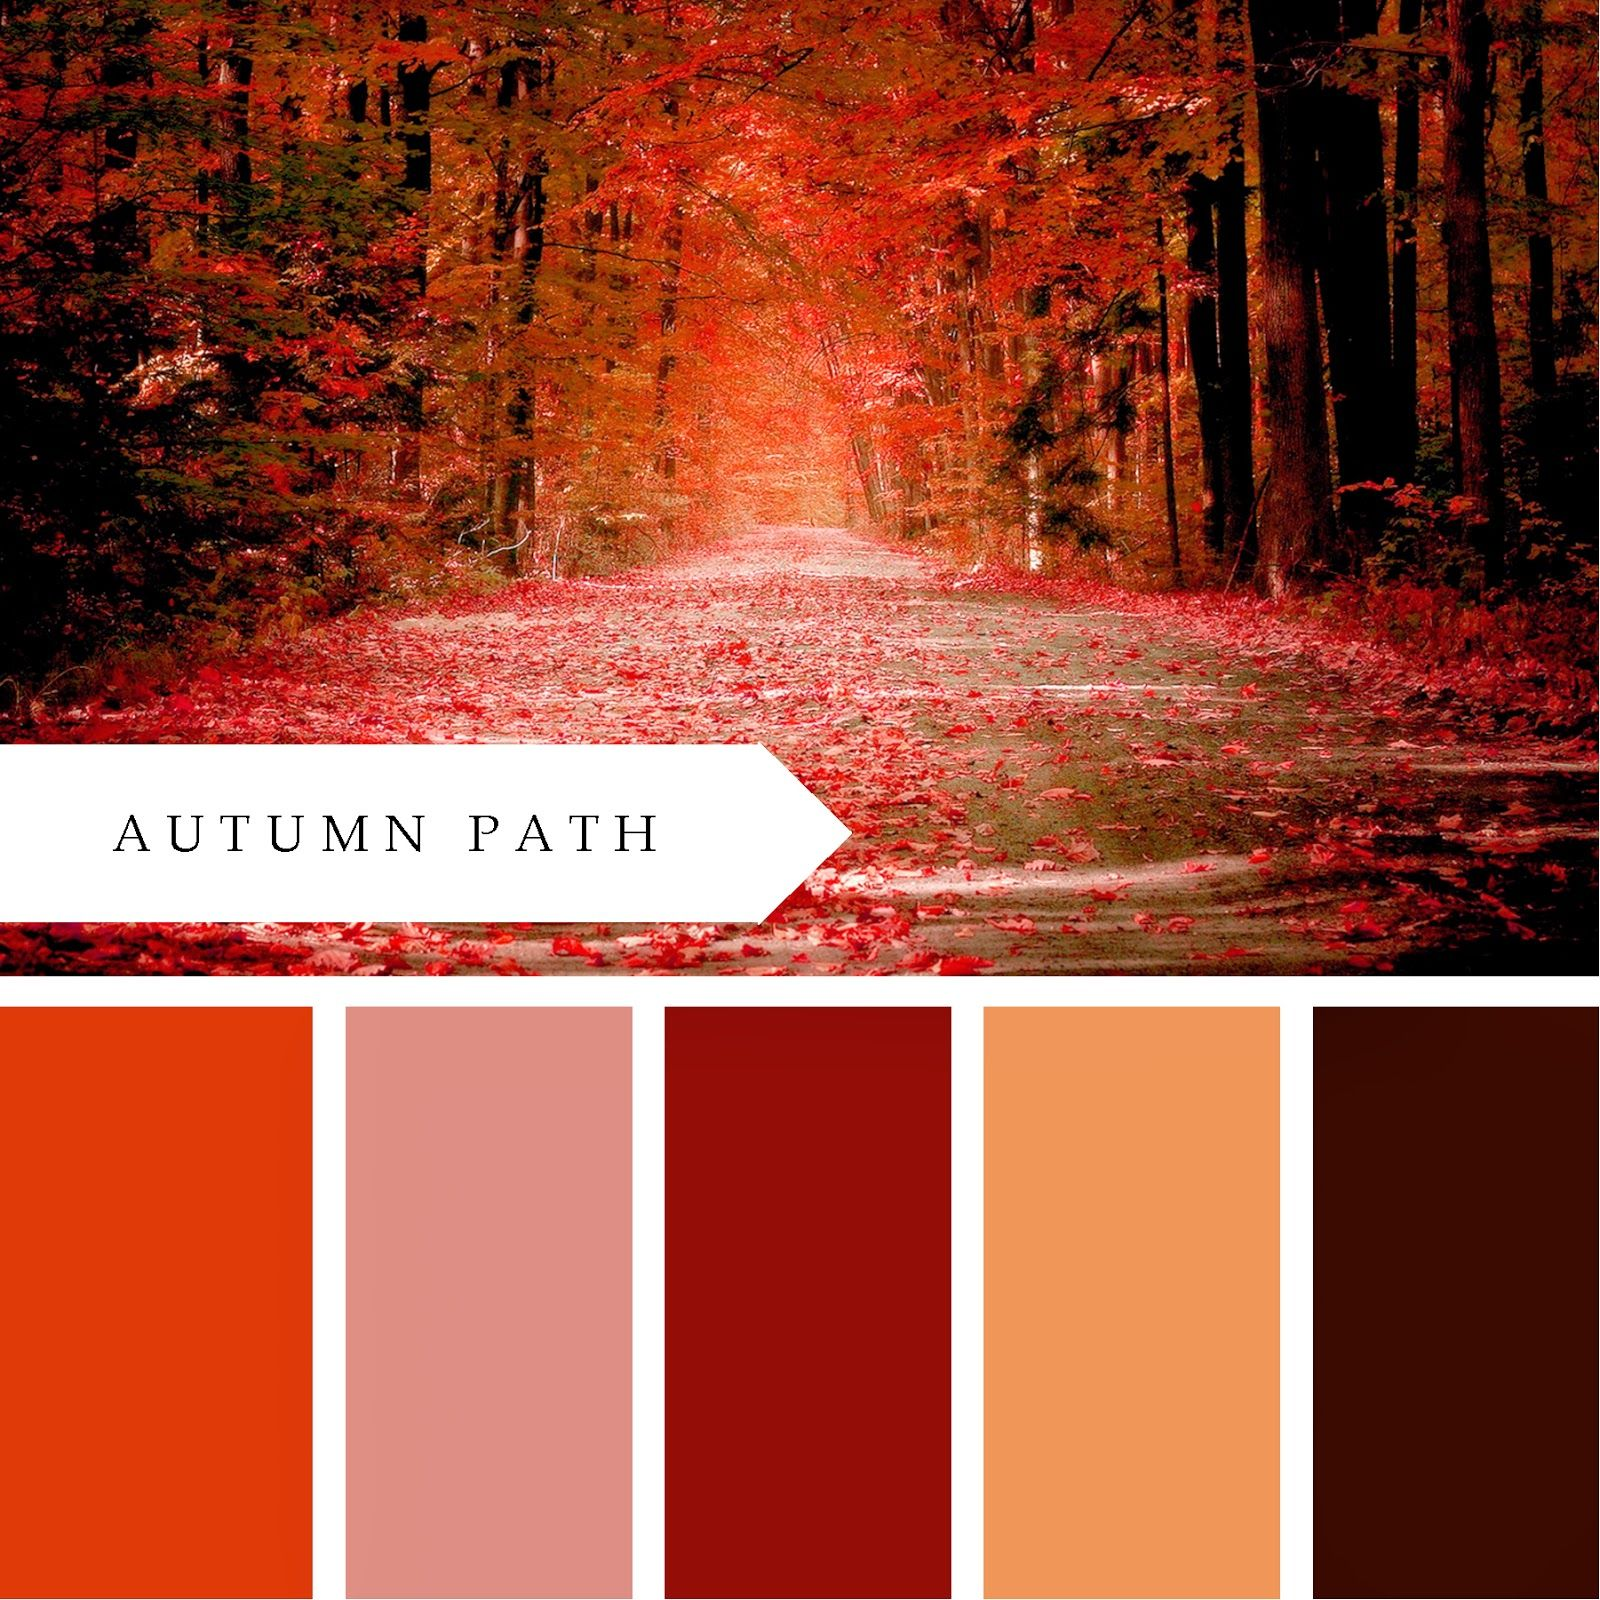 Pinks Reds Browns Soft Hues Of Gold Or Even Champagne With Orange Looks Right Orange Color Schemes Fall Color Palette Rustic Color Palettes